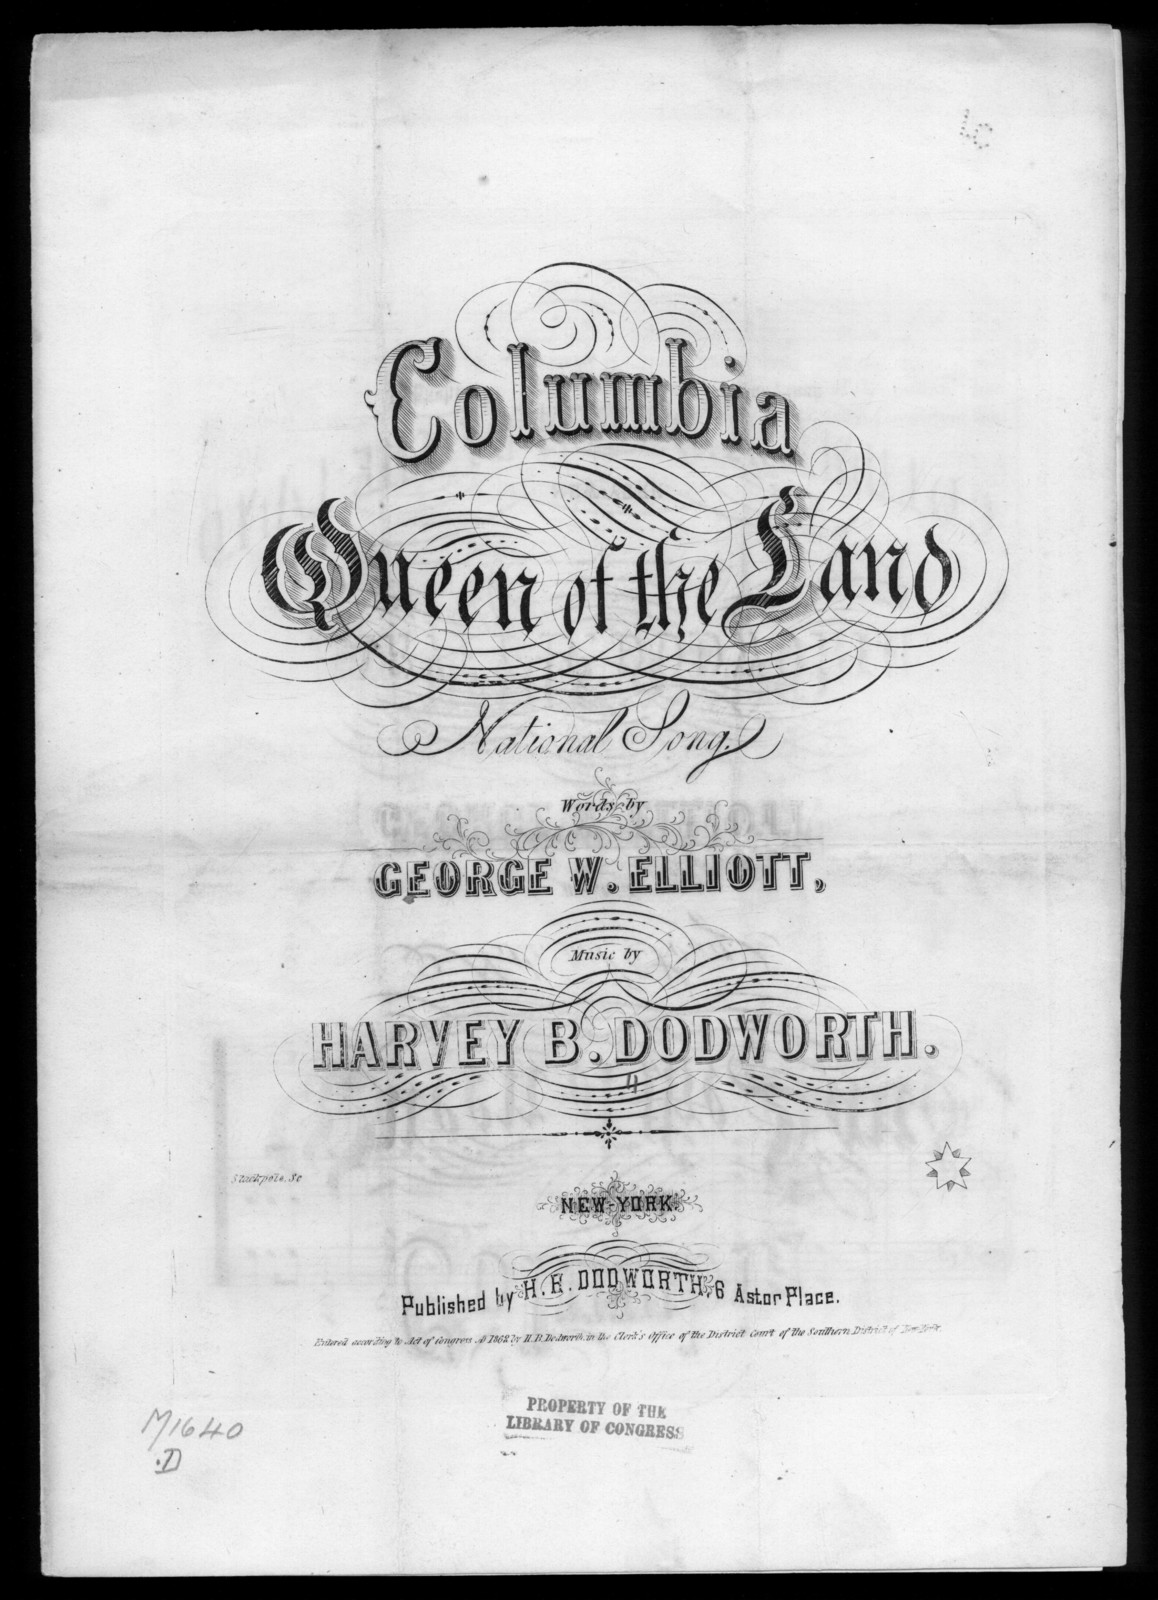 Columbia, queen of the land